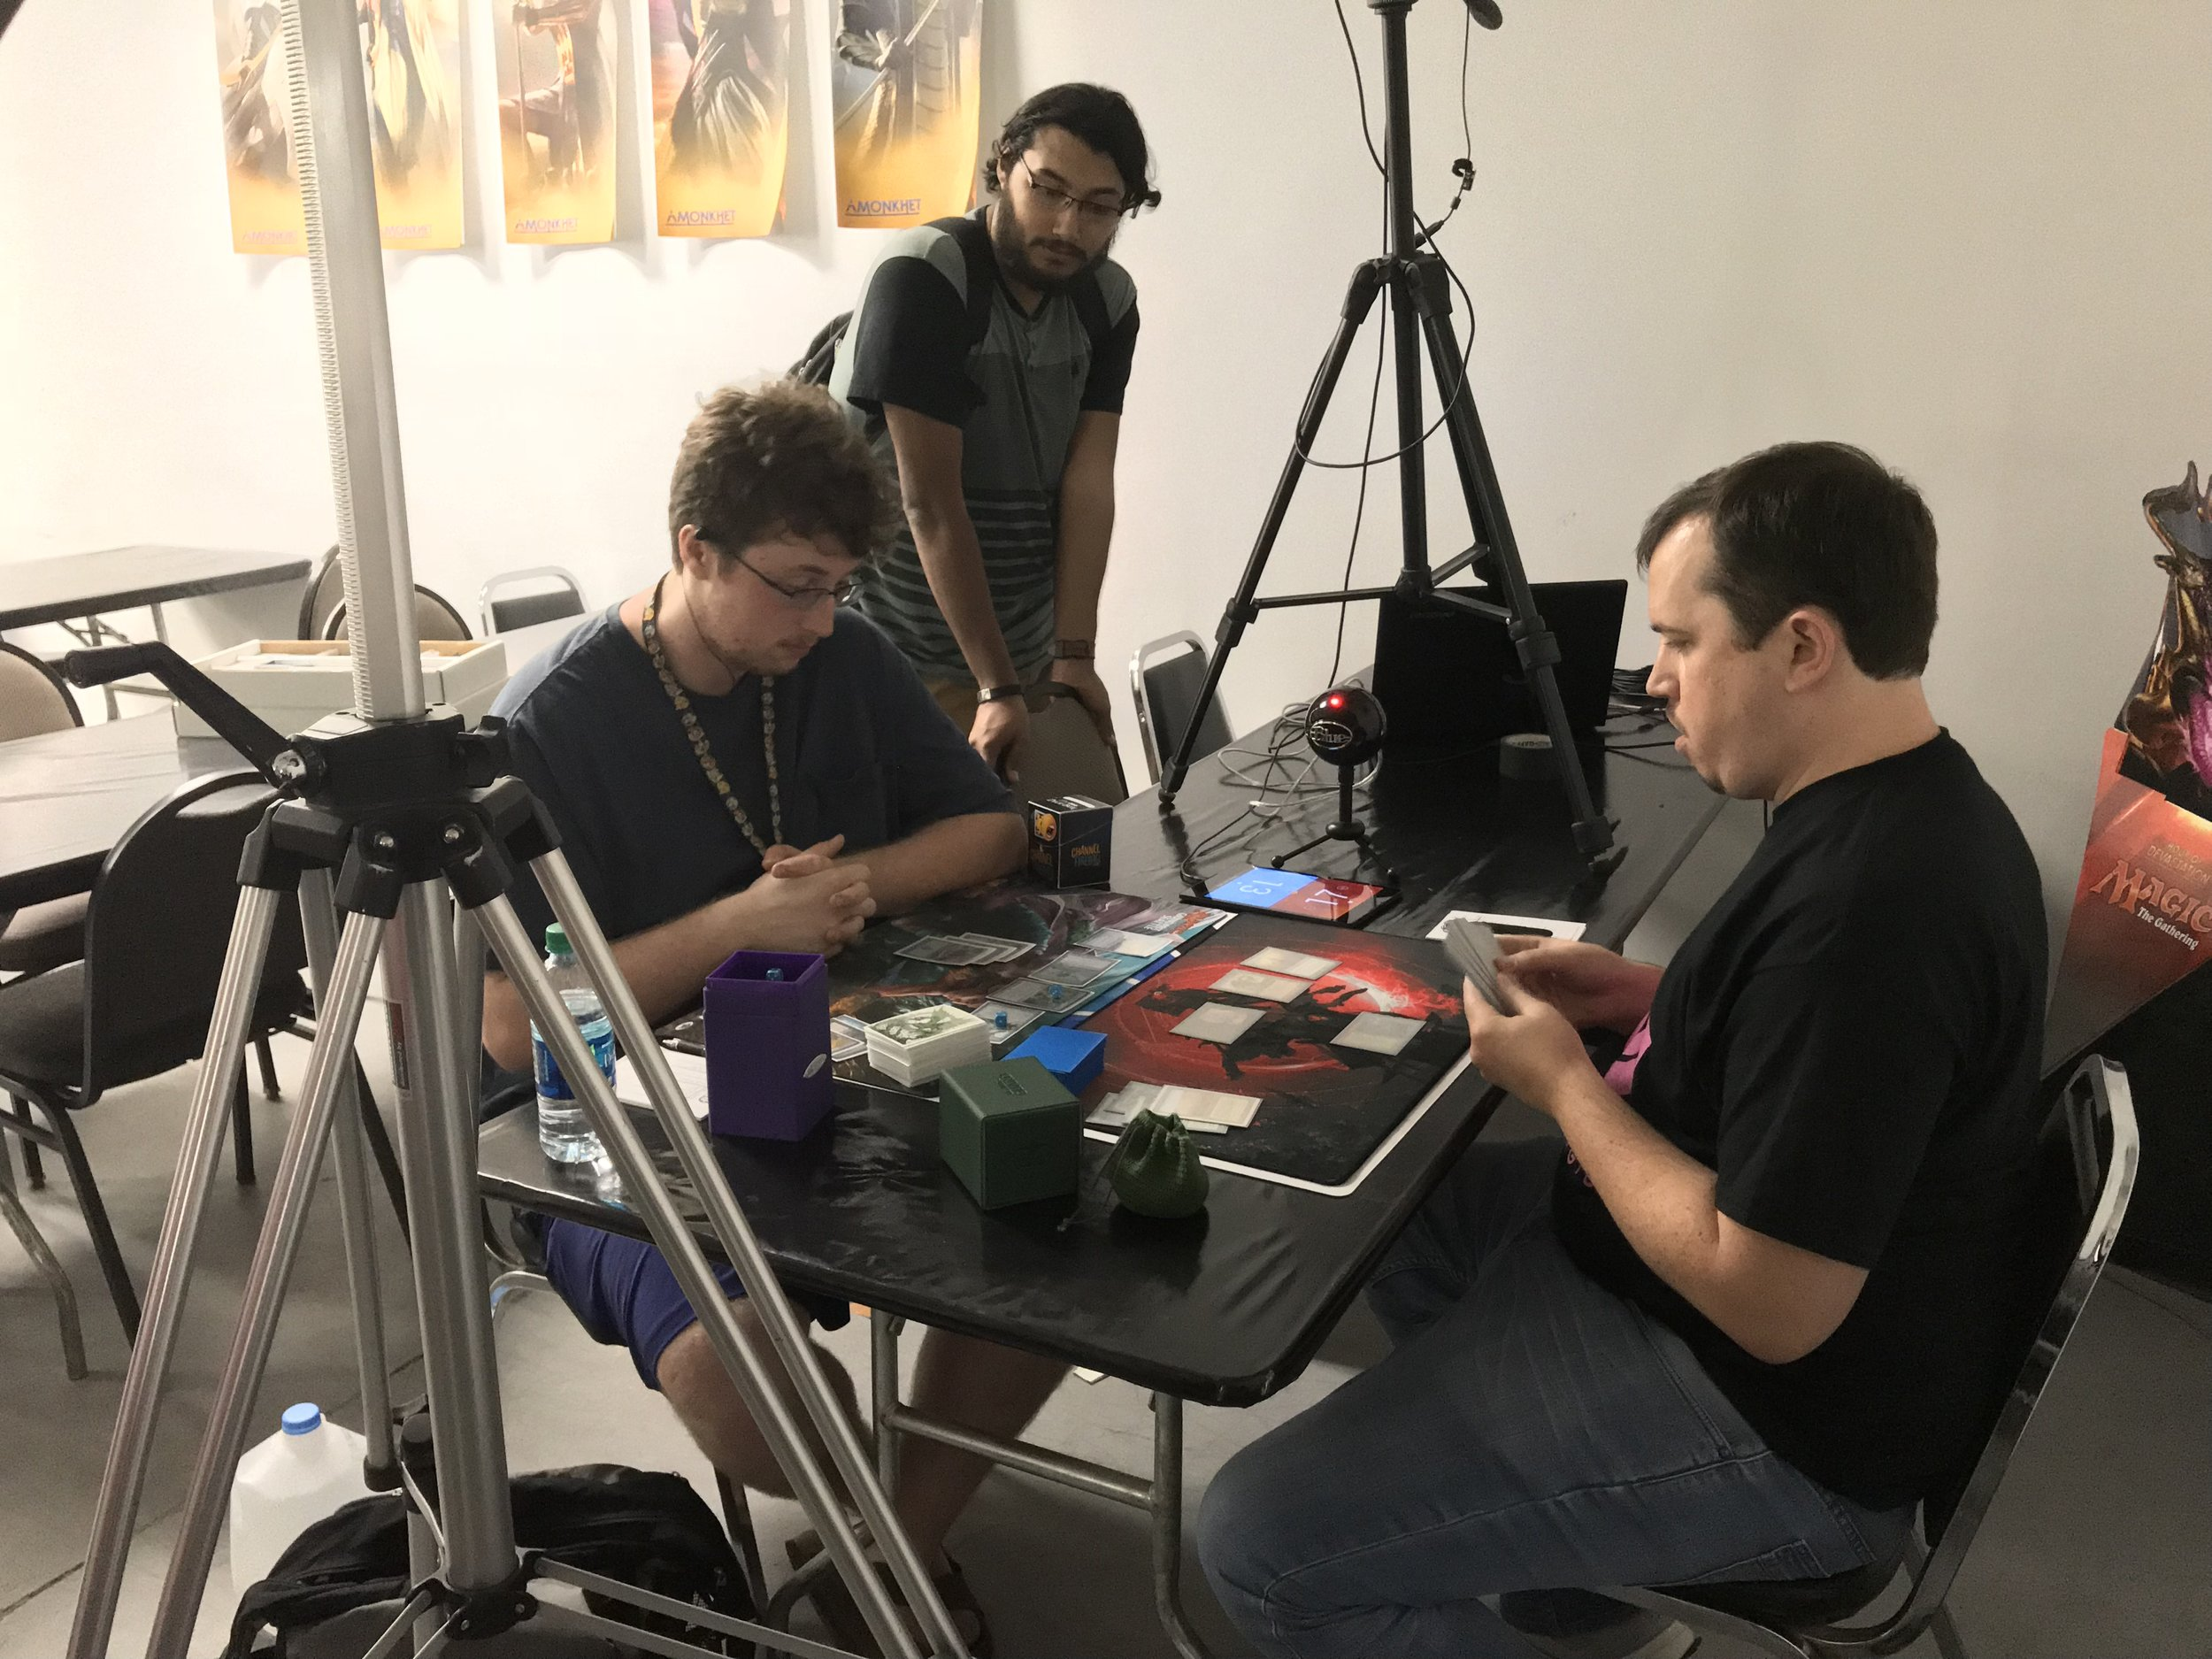 The event was streamed at  www.twitch.tv/arizonaeternalmagic .